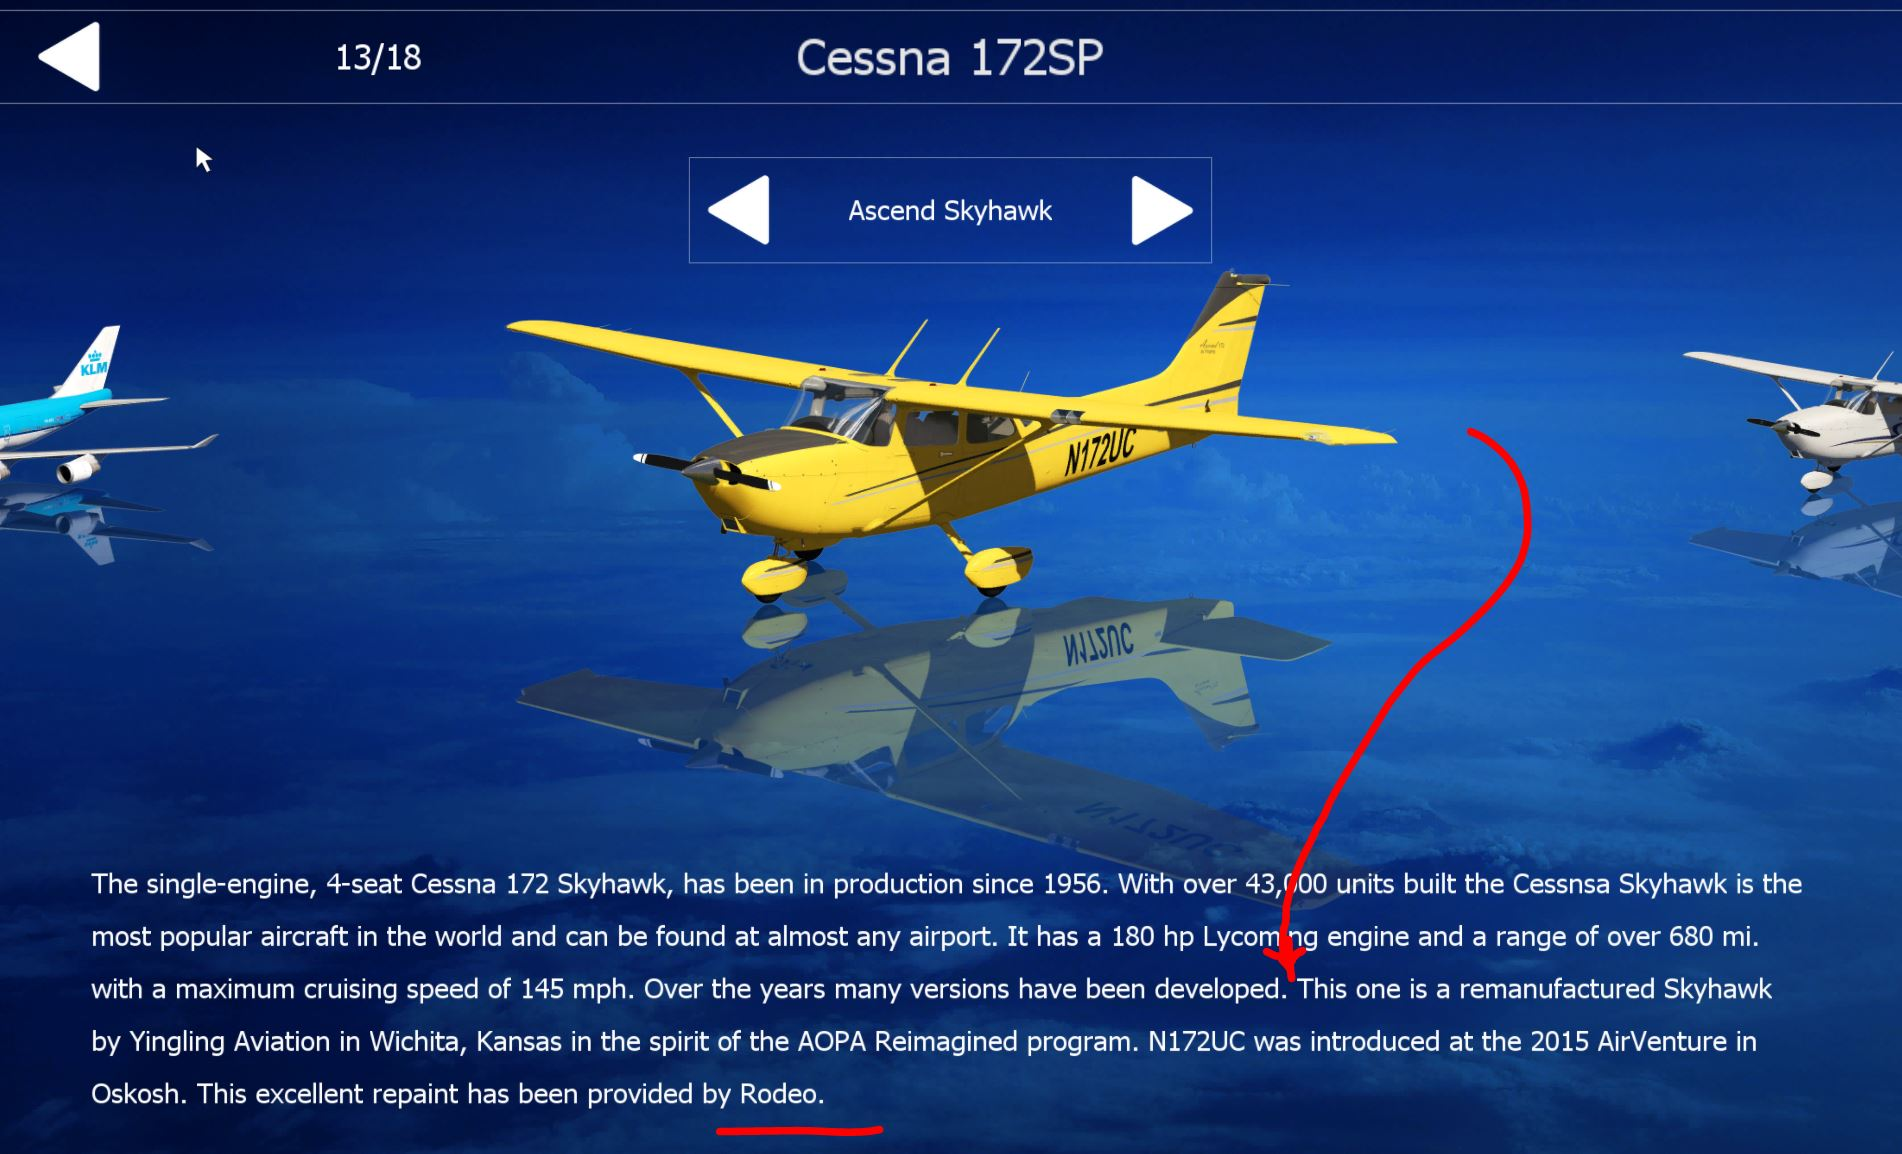 The First User repaint for the Cessna 172 provided by Rodeo